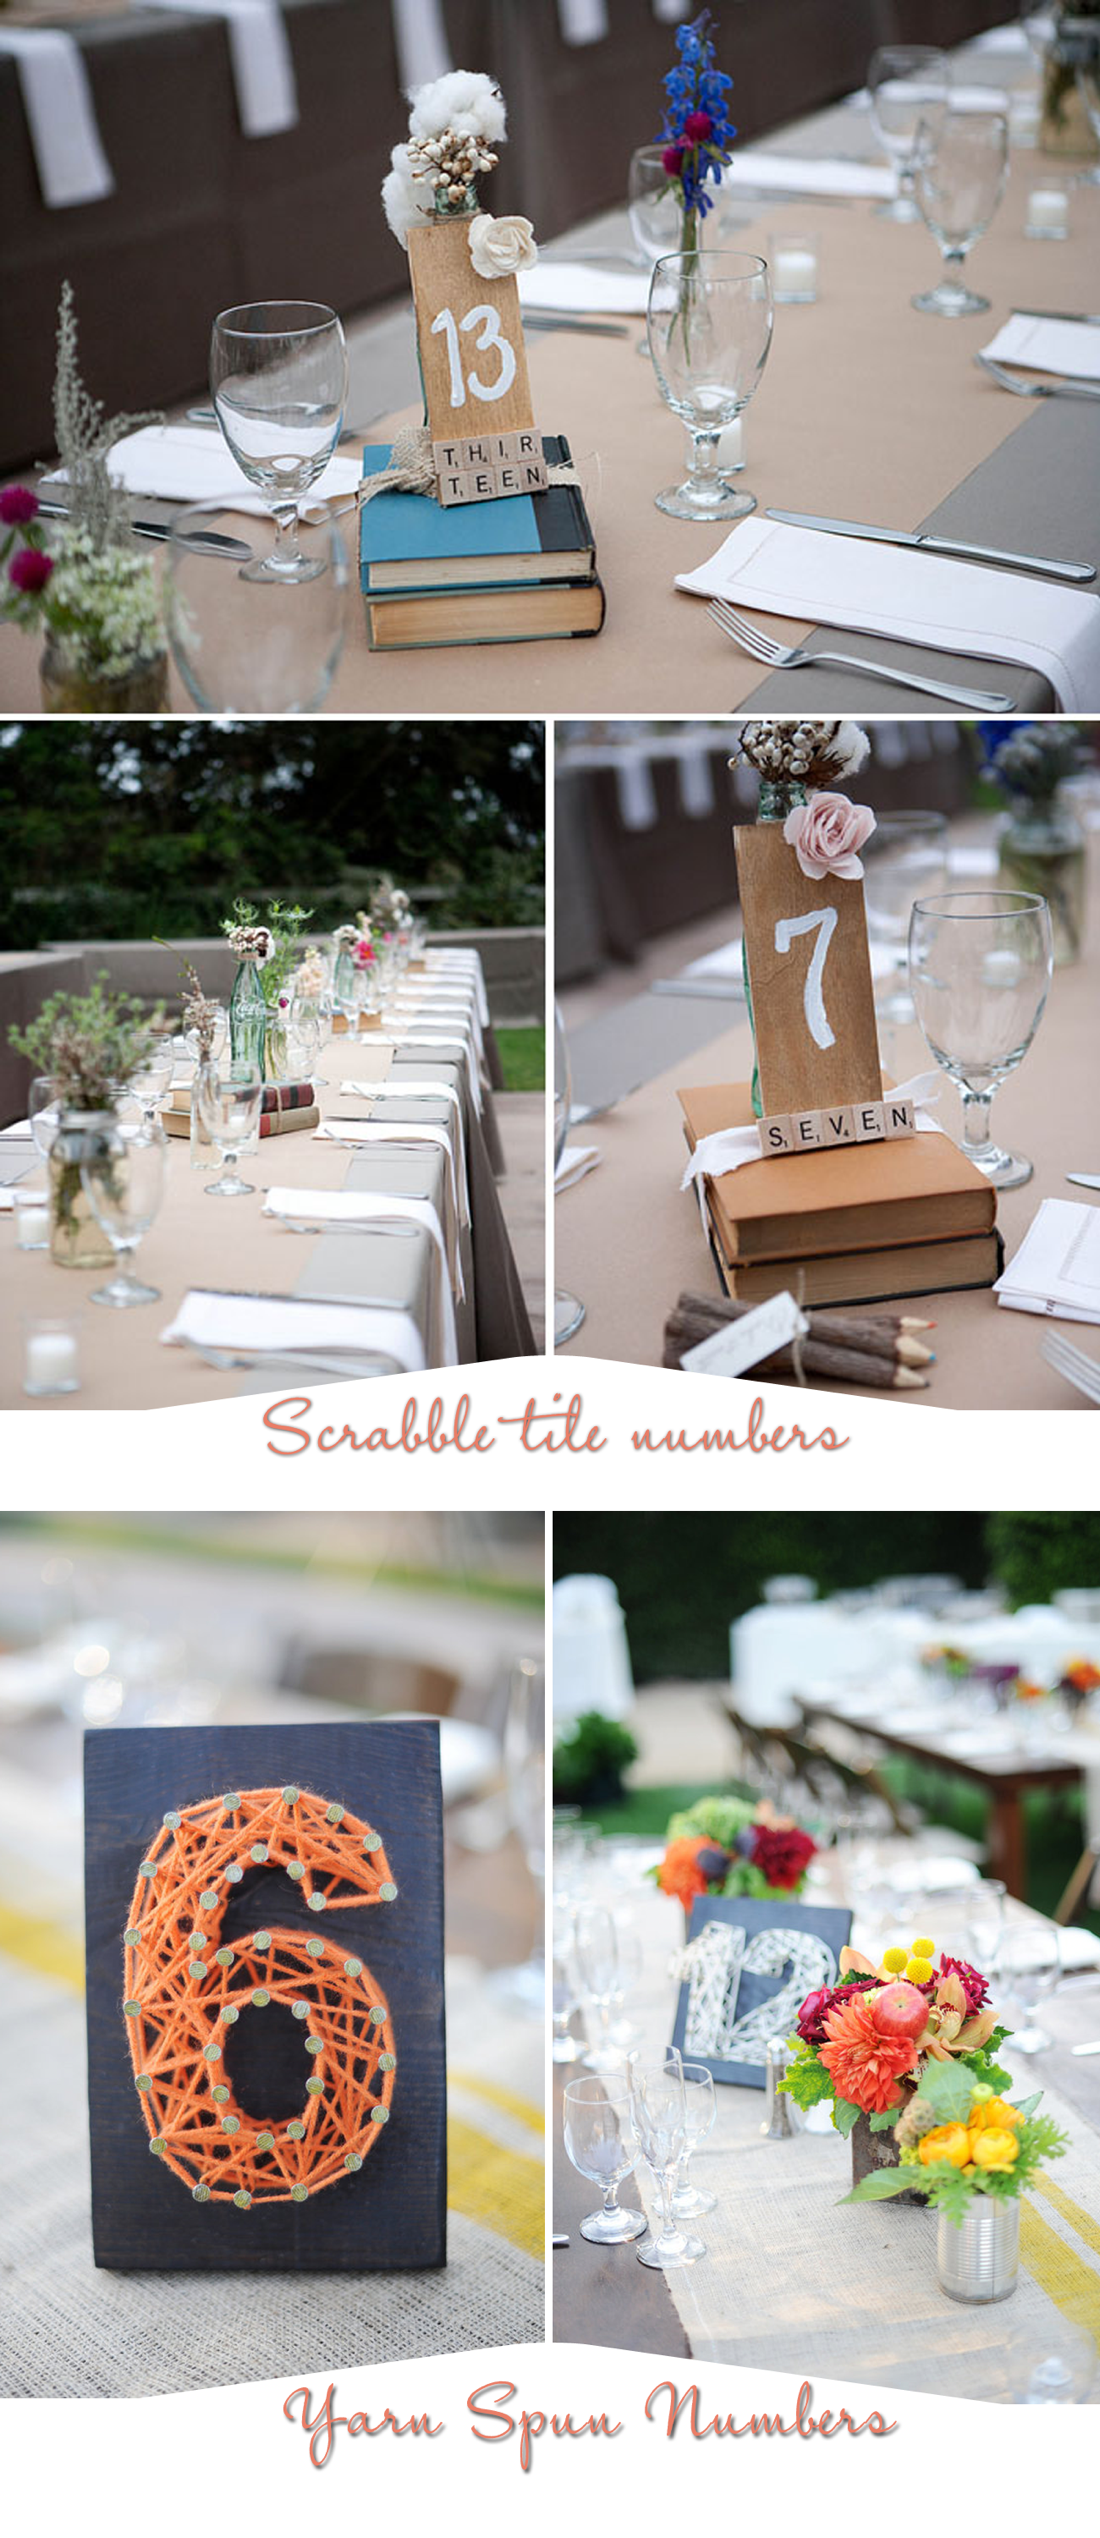 unique wedding reception table number ideas scrabble tiles and homespun yarn. Black Bedroom Furniture Sets. Home Design Ideas